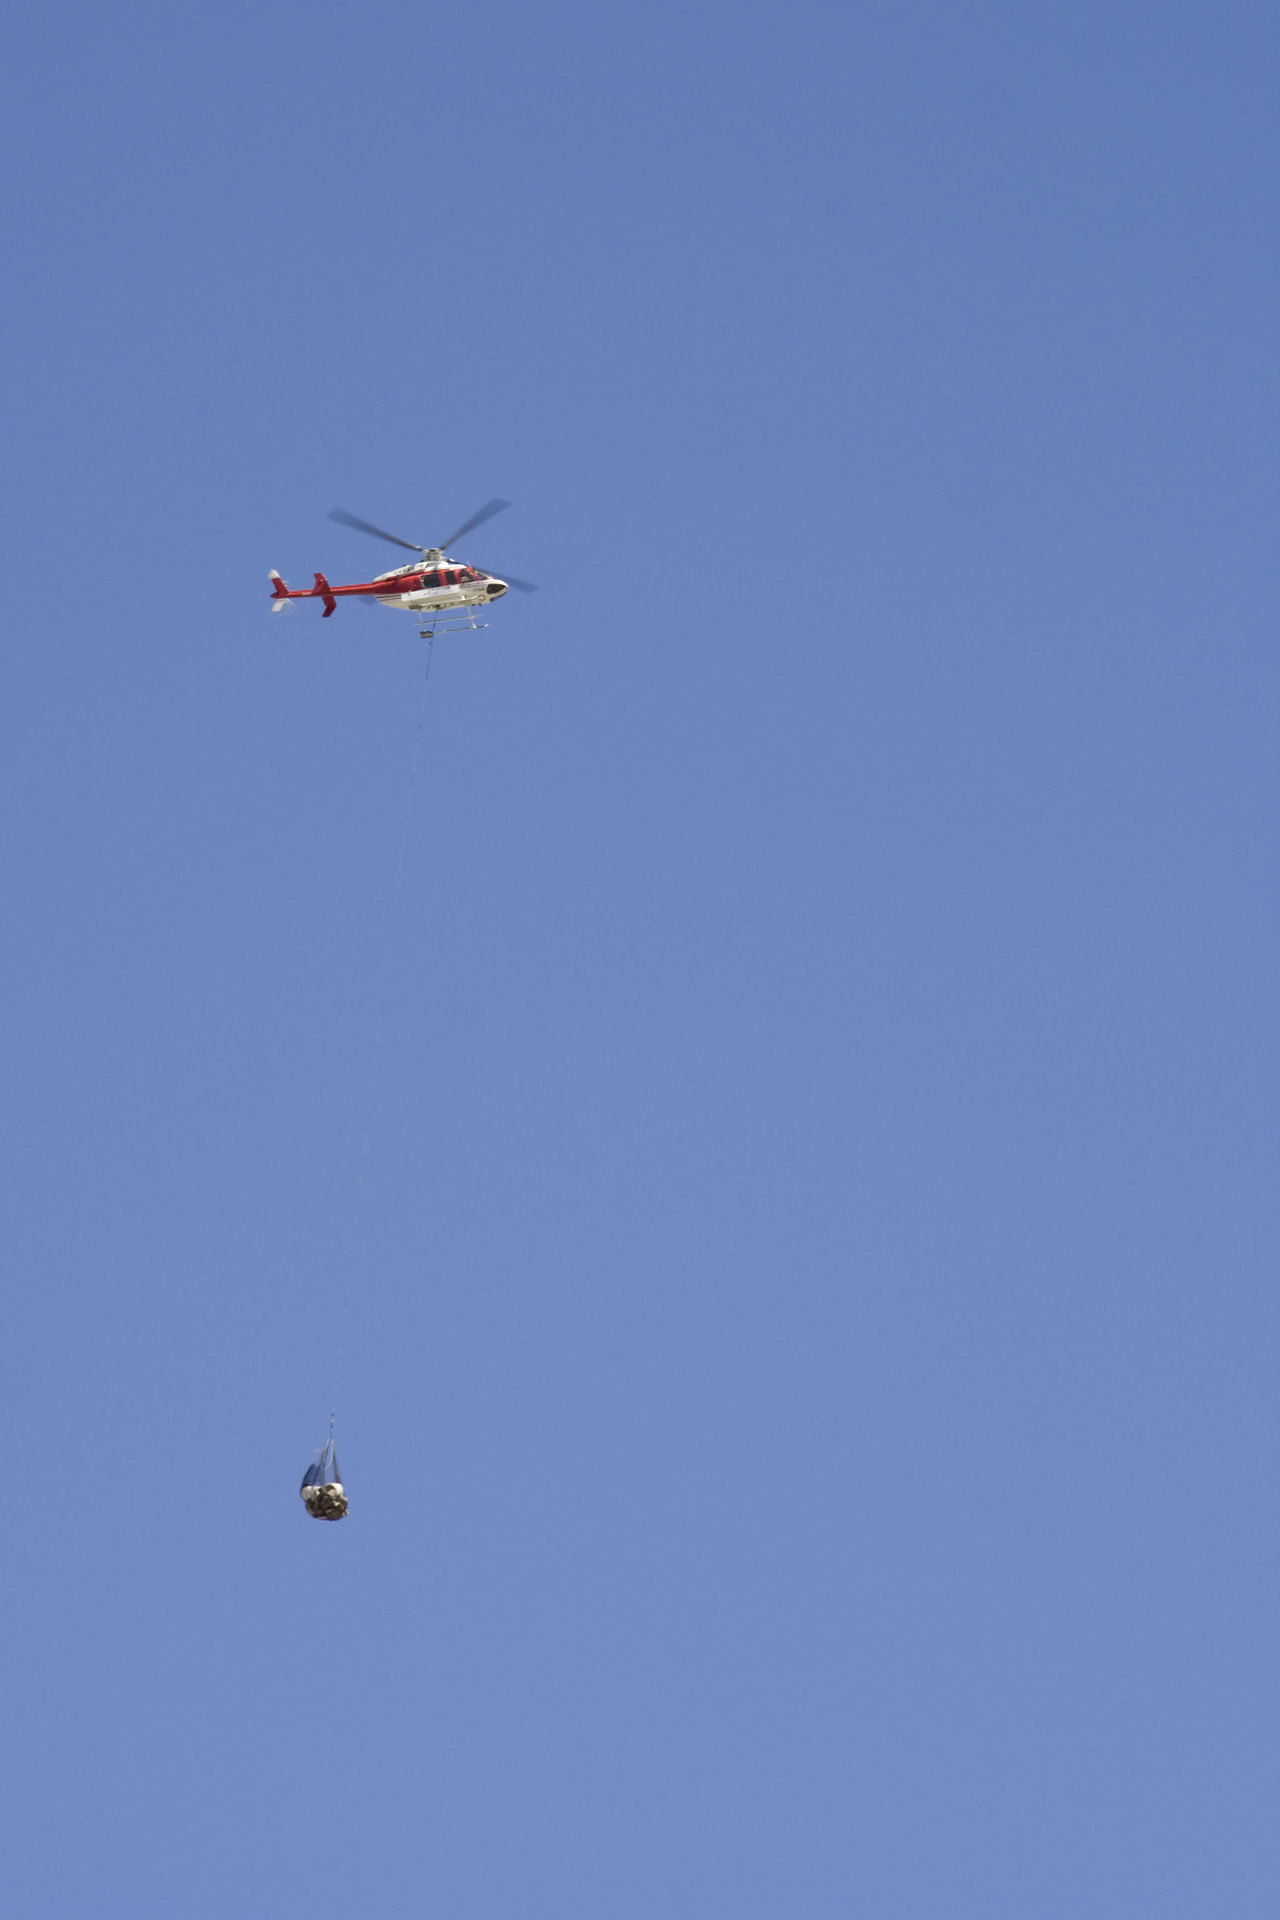 helicopter carrying cargo - canadian rockies, banff national park Aerospace Industry Air Vehicle Aircraft Ambulance Blue Sky Cargo Carrying Clear Sky Emergency Flight Flying Freight Transportation Helicopter Helicopter 🚁 Help Low Angle View Mid-air No People Propeller Rescue Ride Safety Sos Transportation Transportation